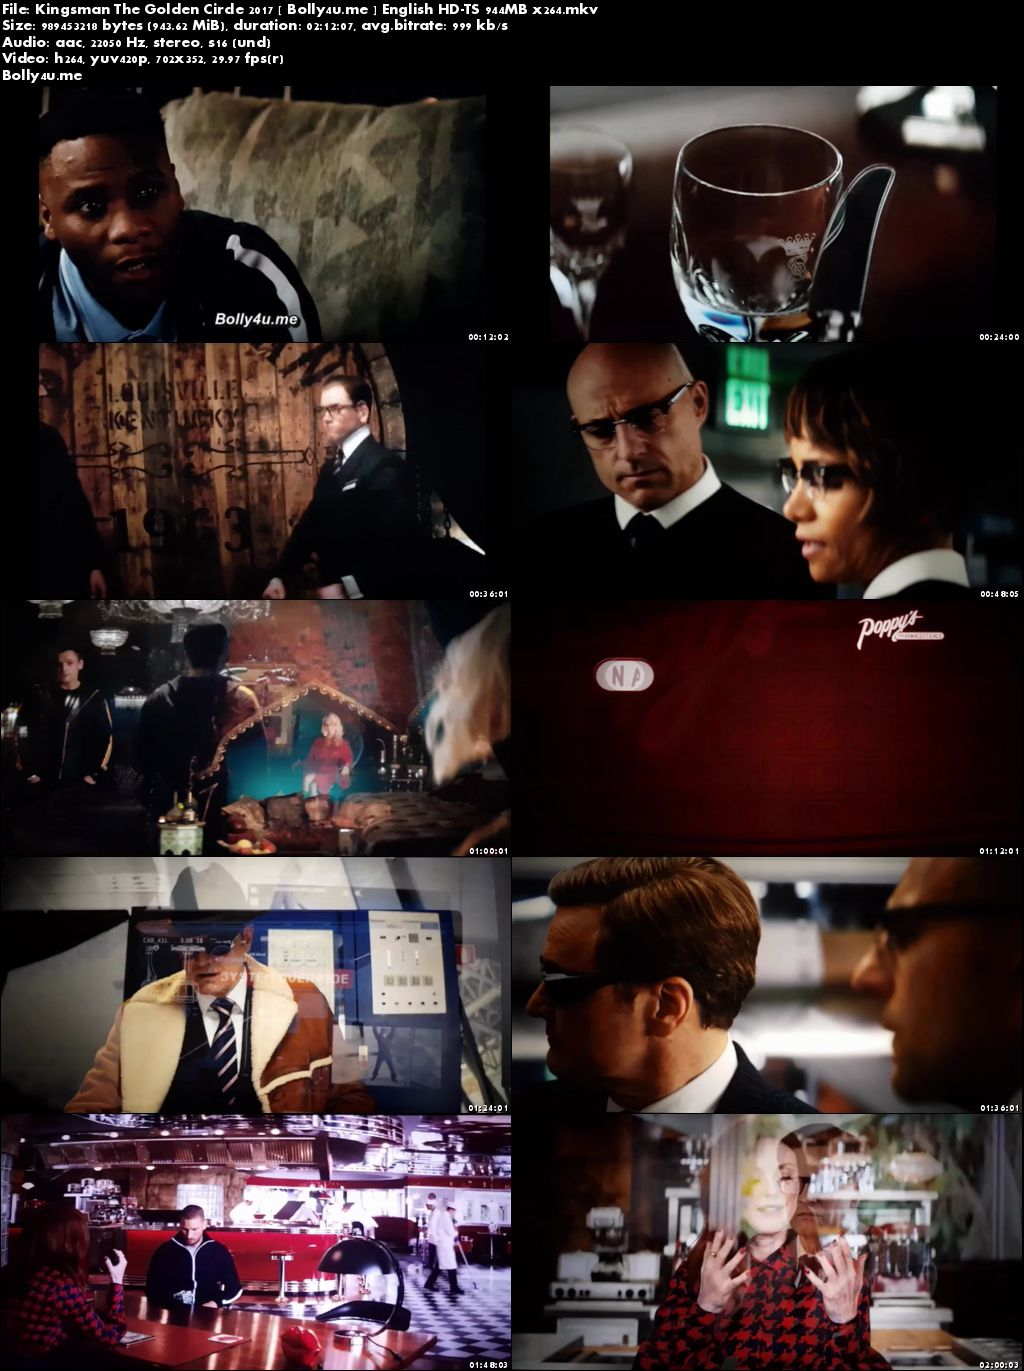 Kingsman The Golden Circle 2017 HDTS 350MB English 480p Download